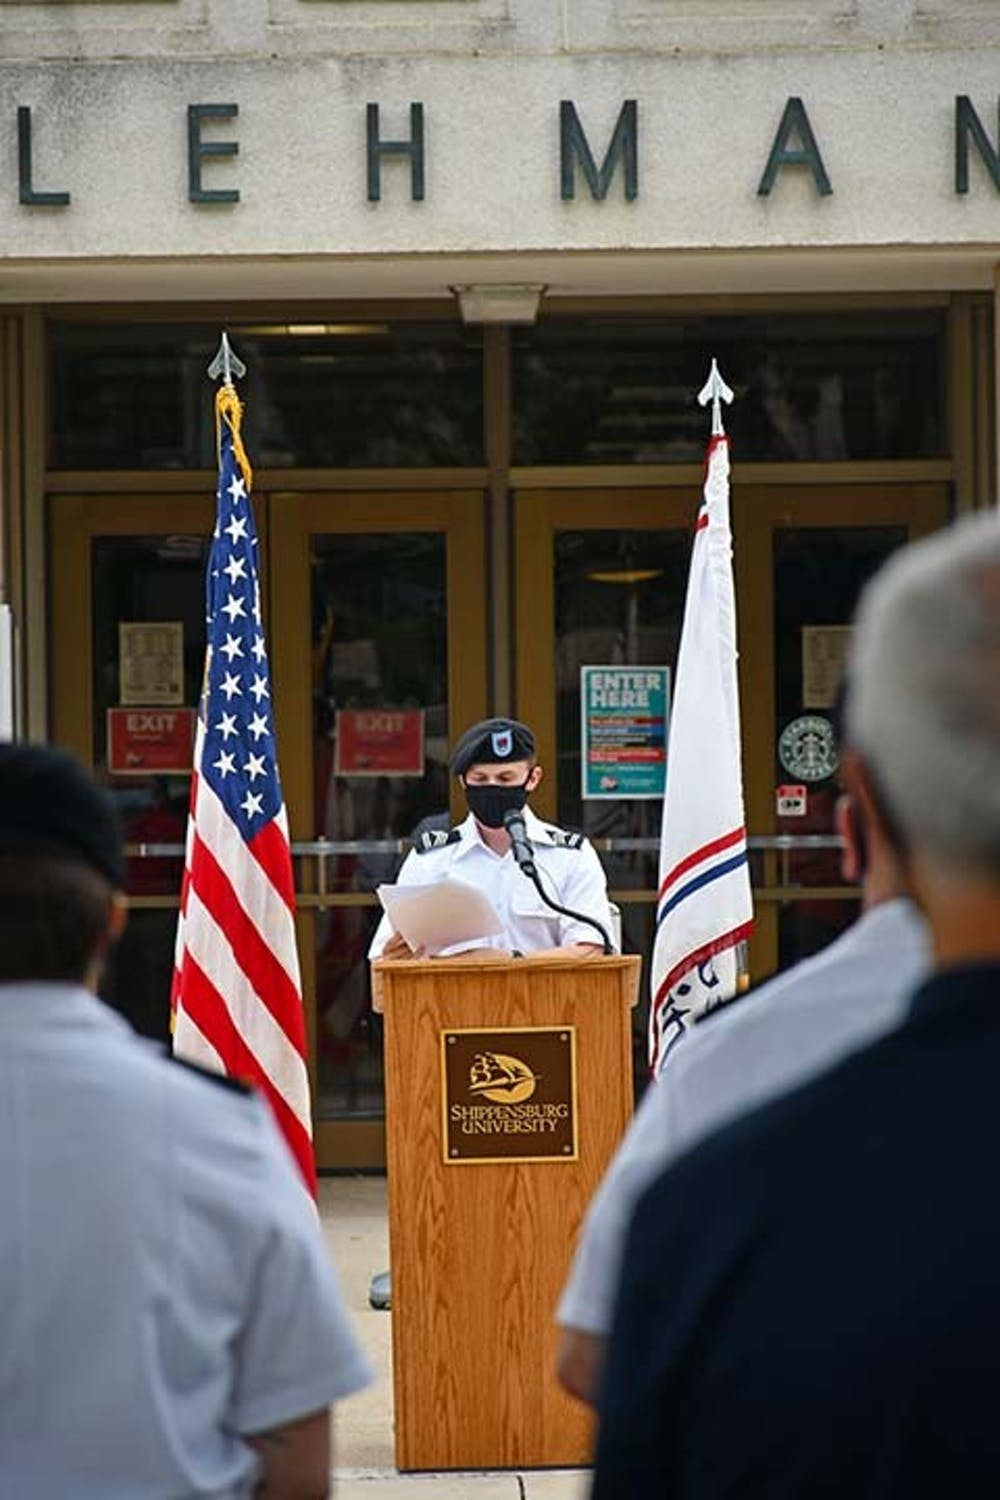 Campus remembers 9/11